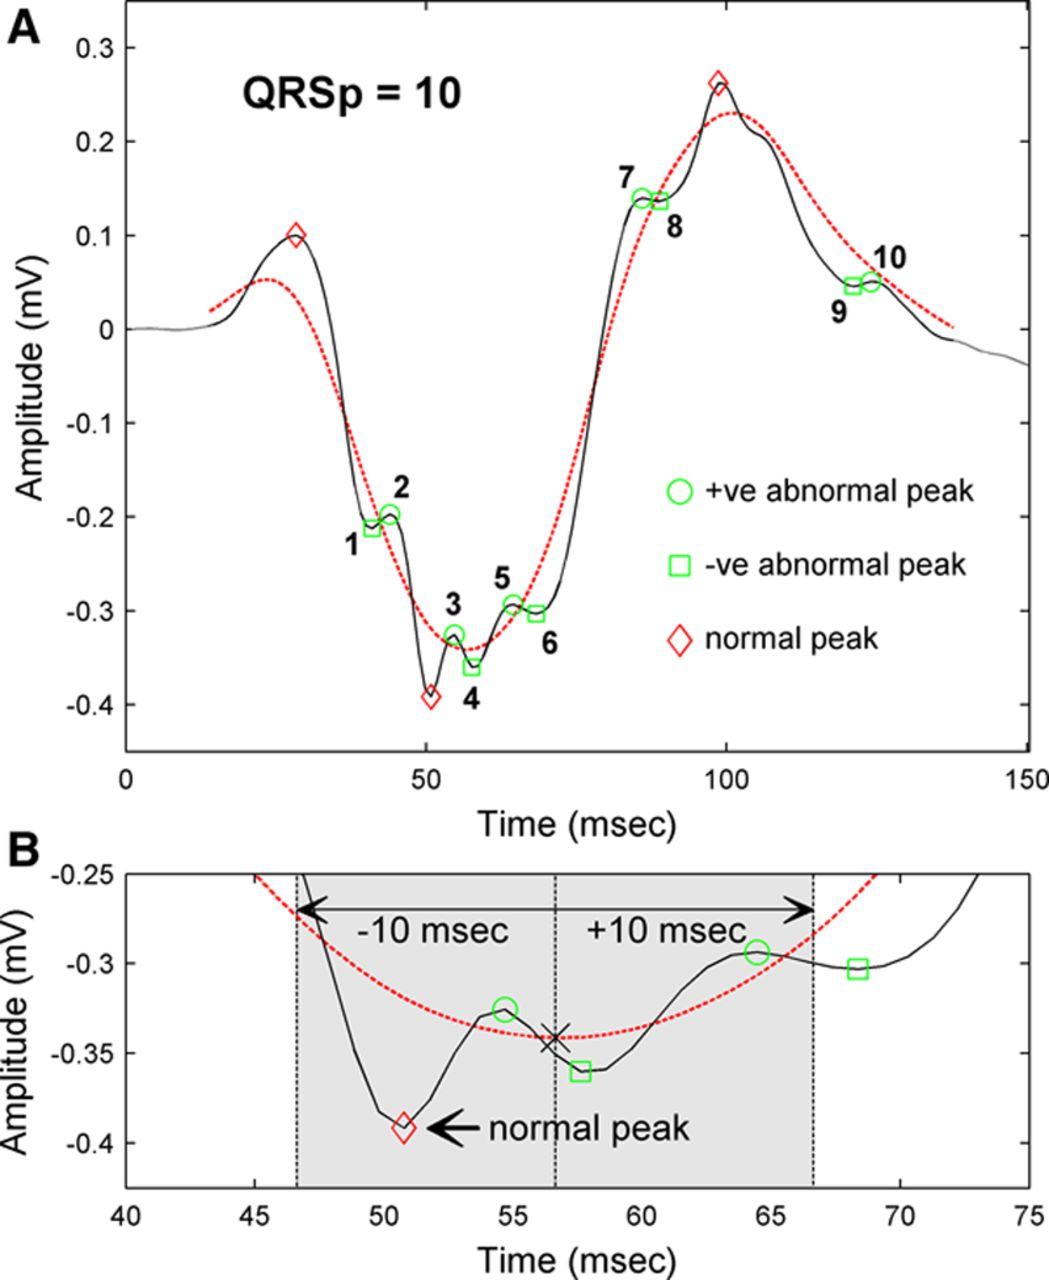 Automated Quantification of Low-Amplitude Abnormal QRS Peaks